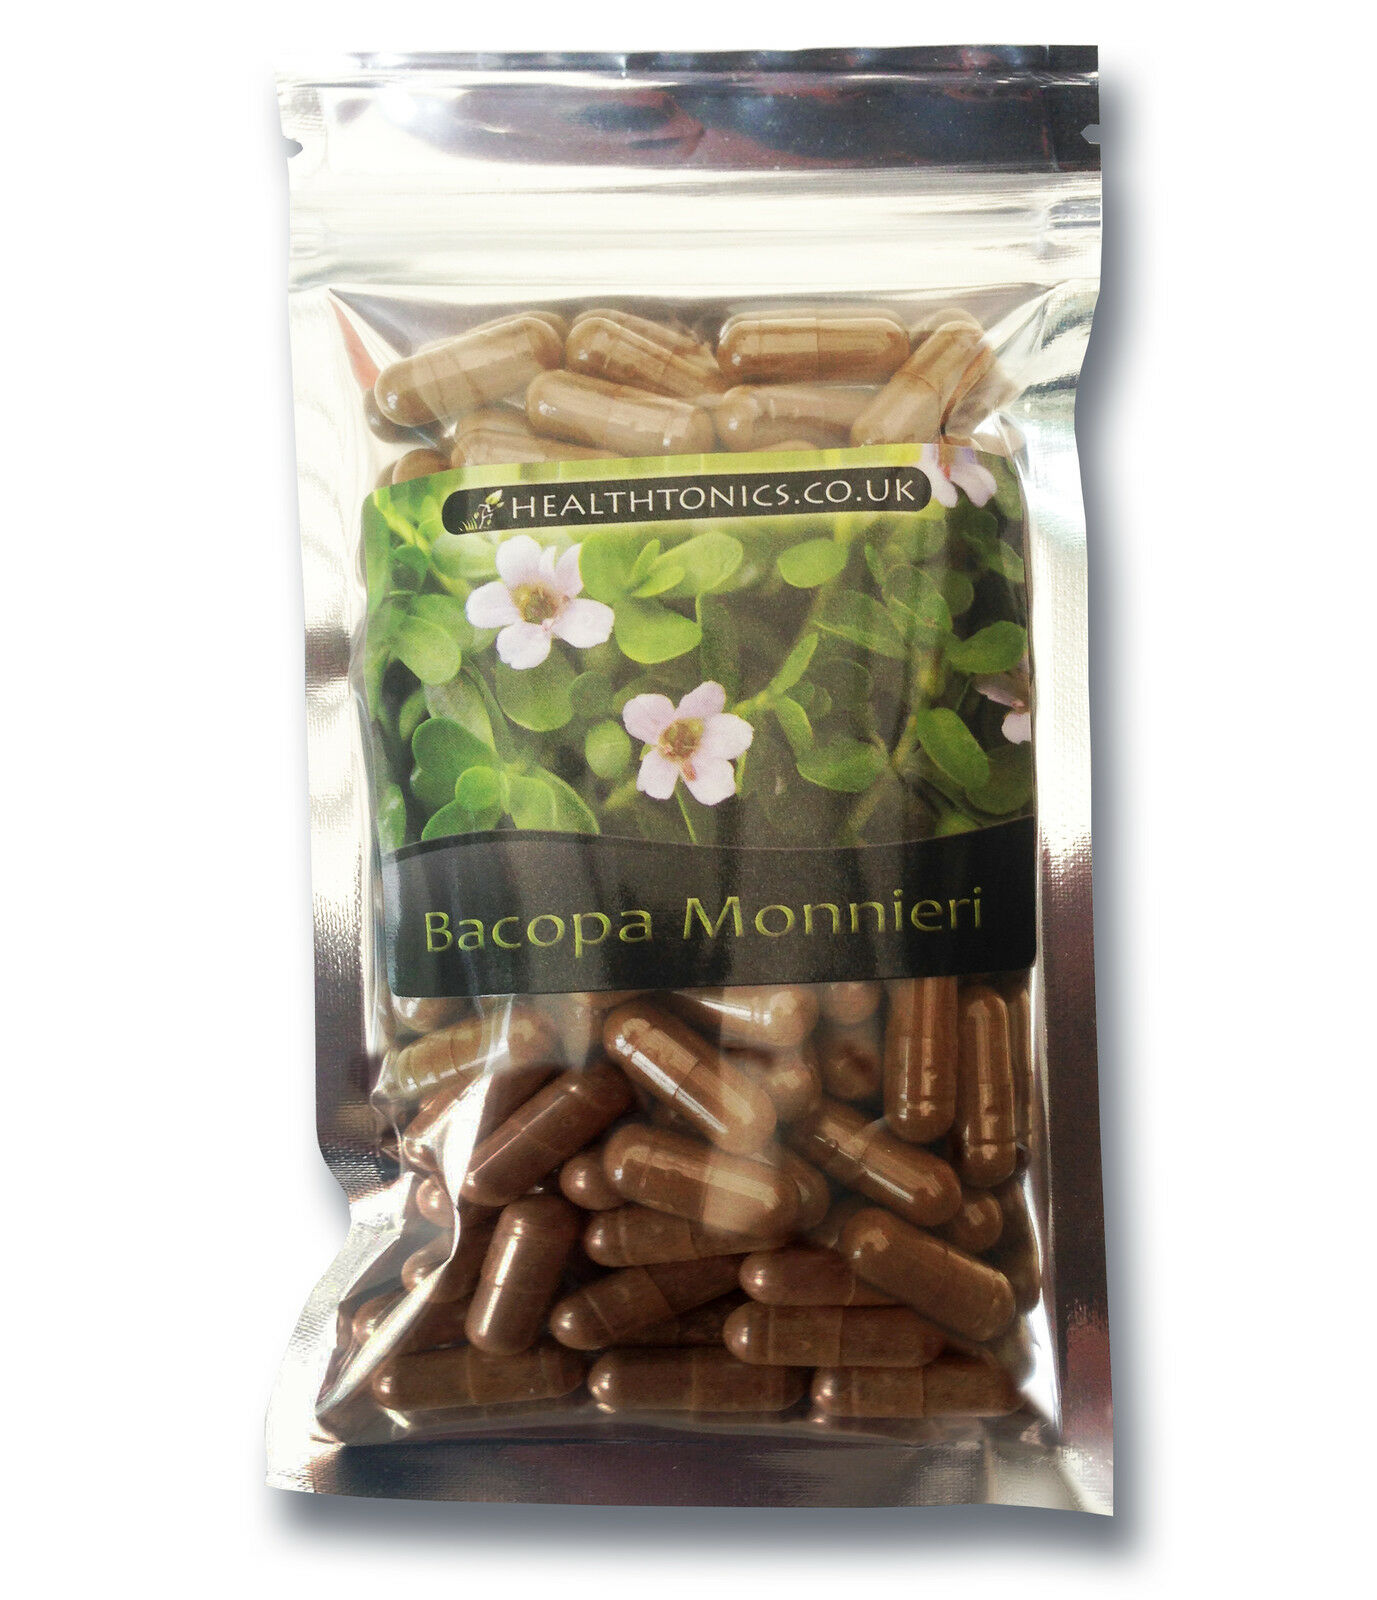 bacopa monnieri extract 400mg 10 1 30 90 vegetarian capsules chf picclick ch. Black Bedroom Furniture Sets. Home Design Ideas